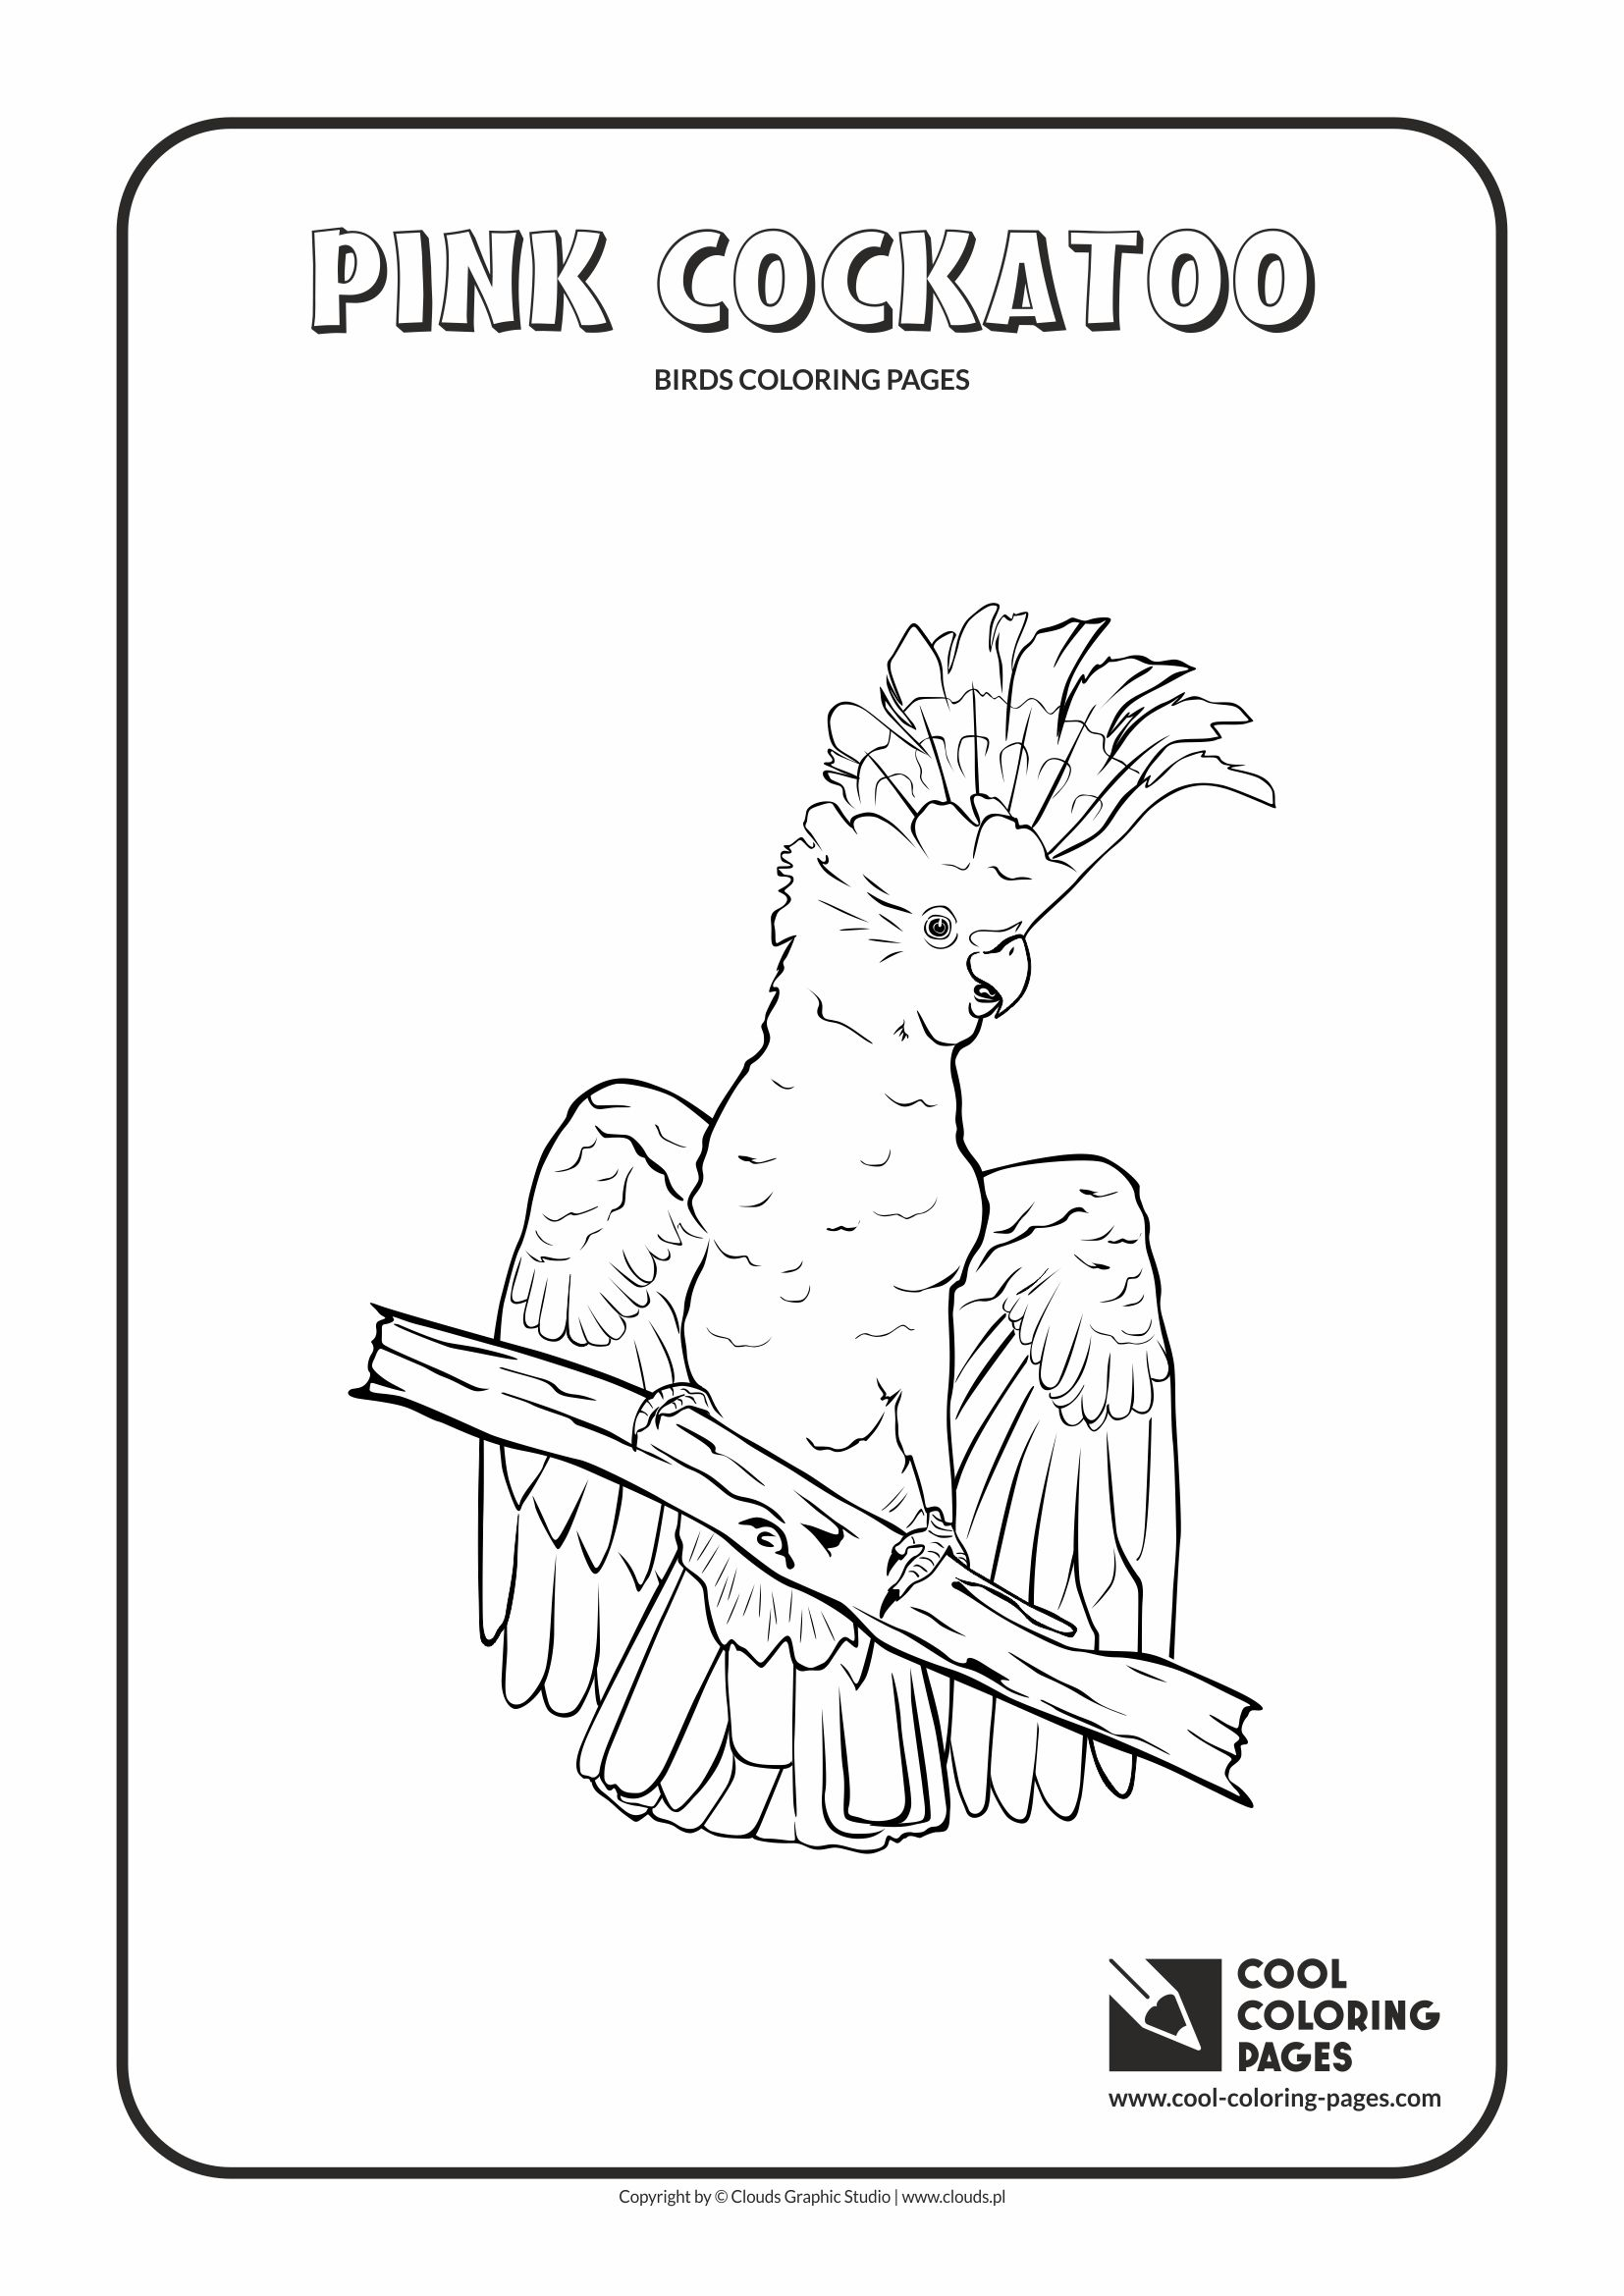 Cool Coloring Pages - Animals / Pink cockatoo / Coloring page with pink cockatoo